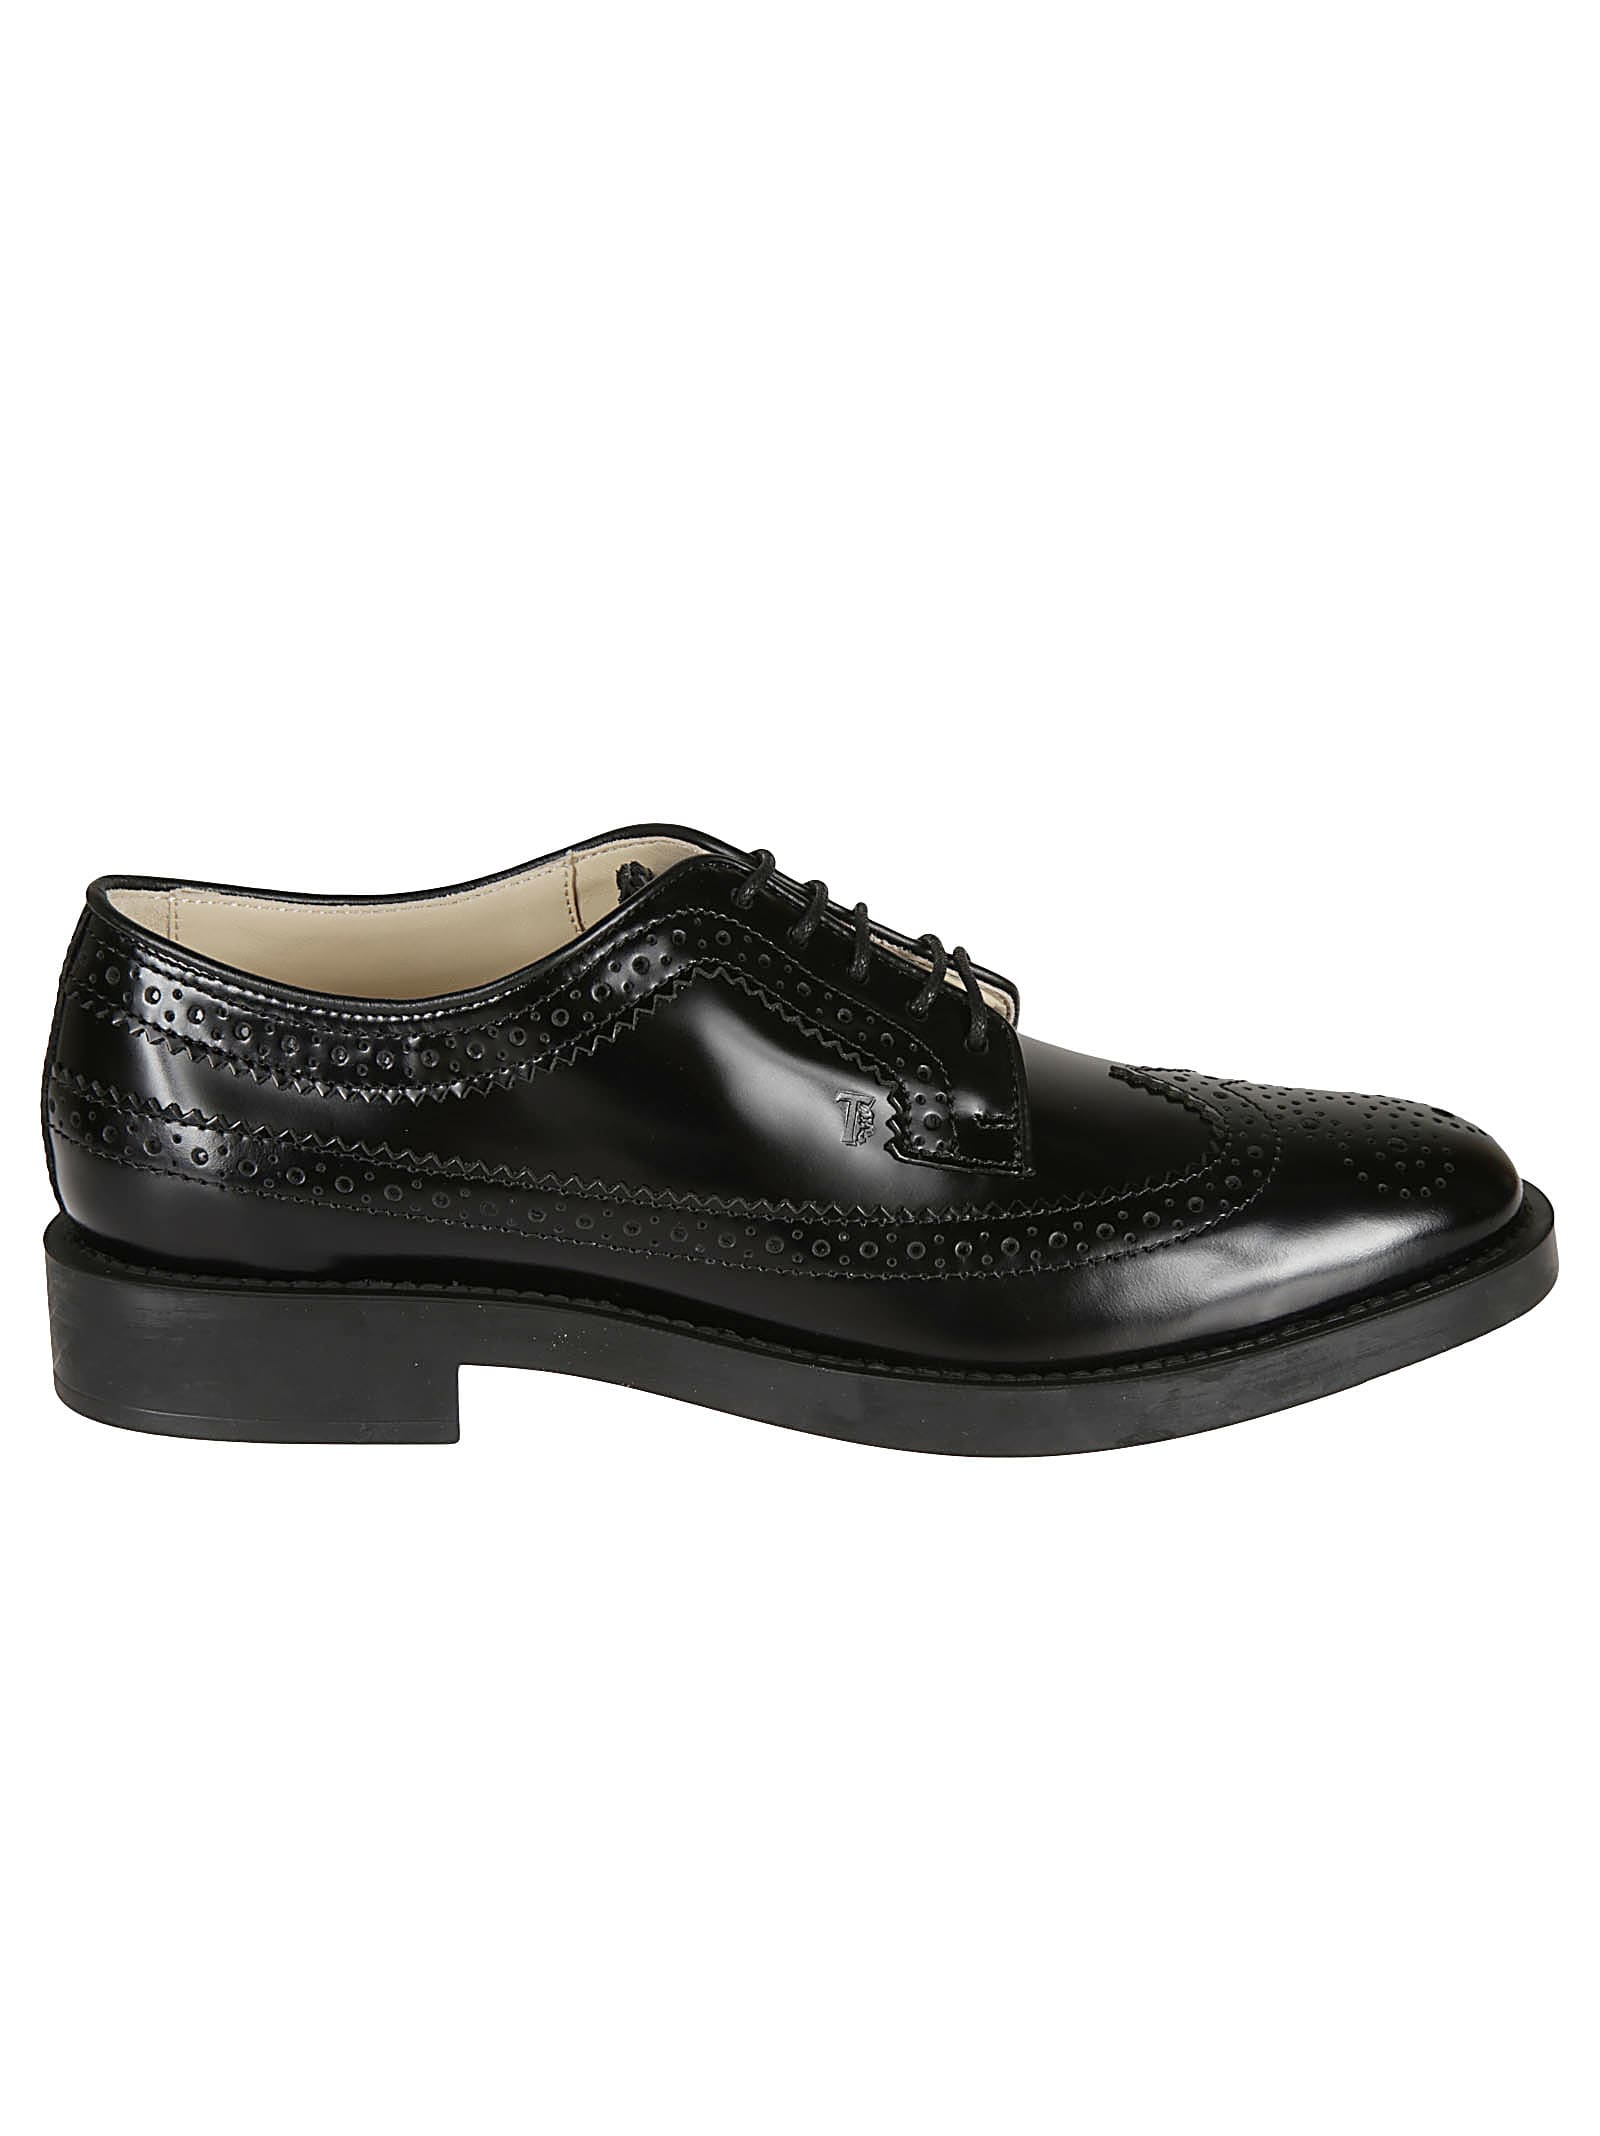 Tods Perforated Derby Shoes